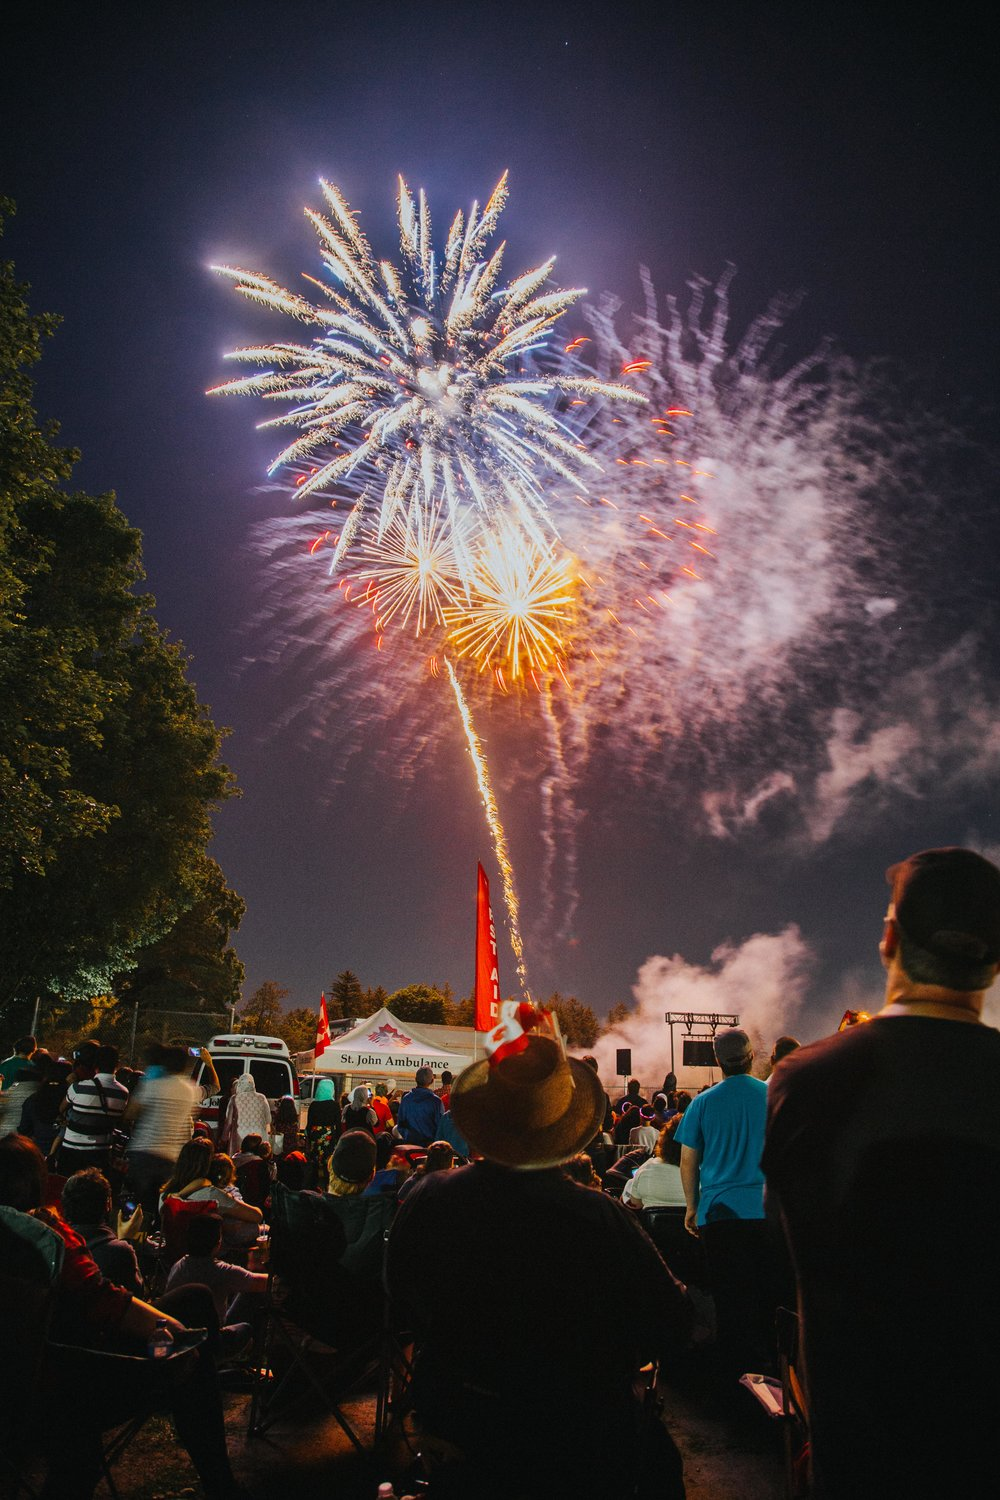 Riverside Park Fireworks during Canada's 150th Celebration